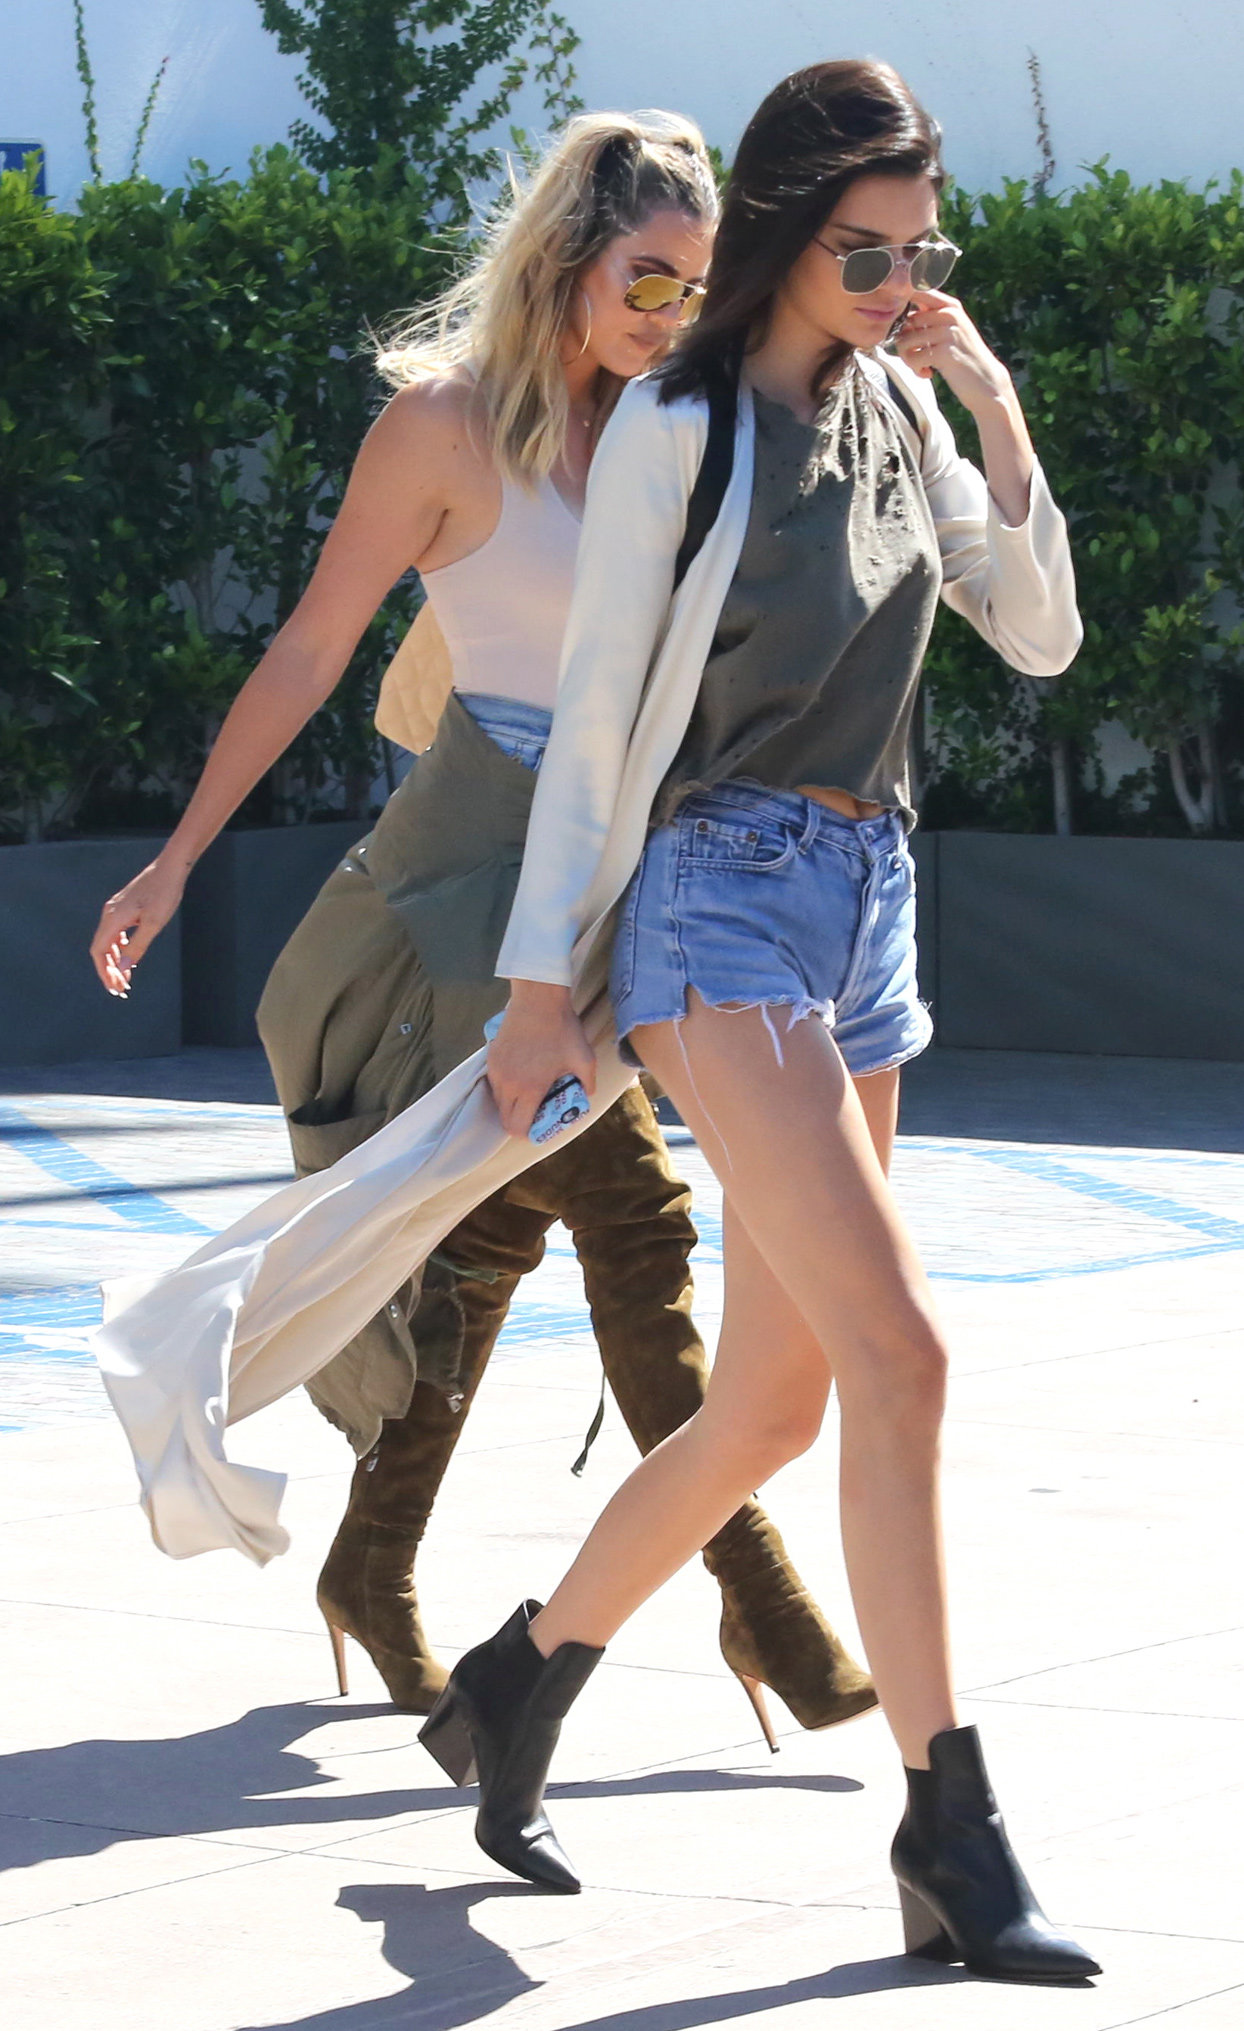 Monday, July 18, 2016 - Kendall Jenner and Khloe Kardashian leave a filming at Mr. C Beverly Hills hotel in Kendall's brand new Mercedes McLaren and goe to a medical building in Beverly Hills, CA. Kendall wears a distressed green midriff top and blue jean